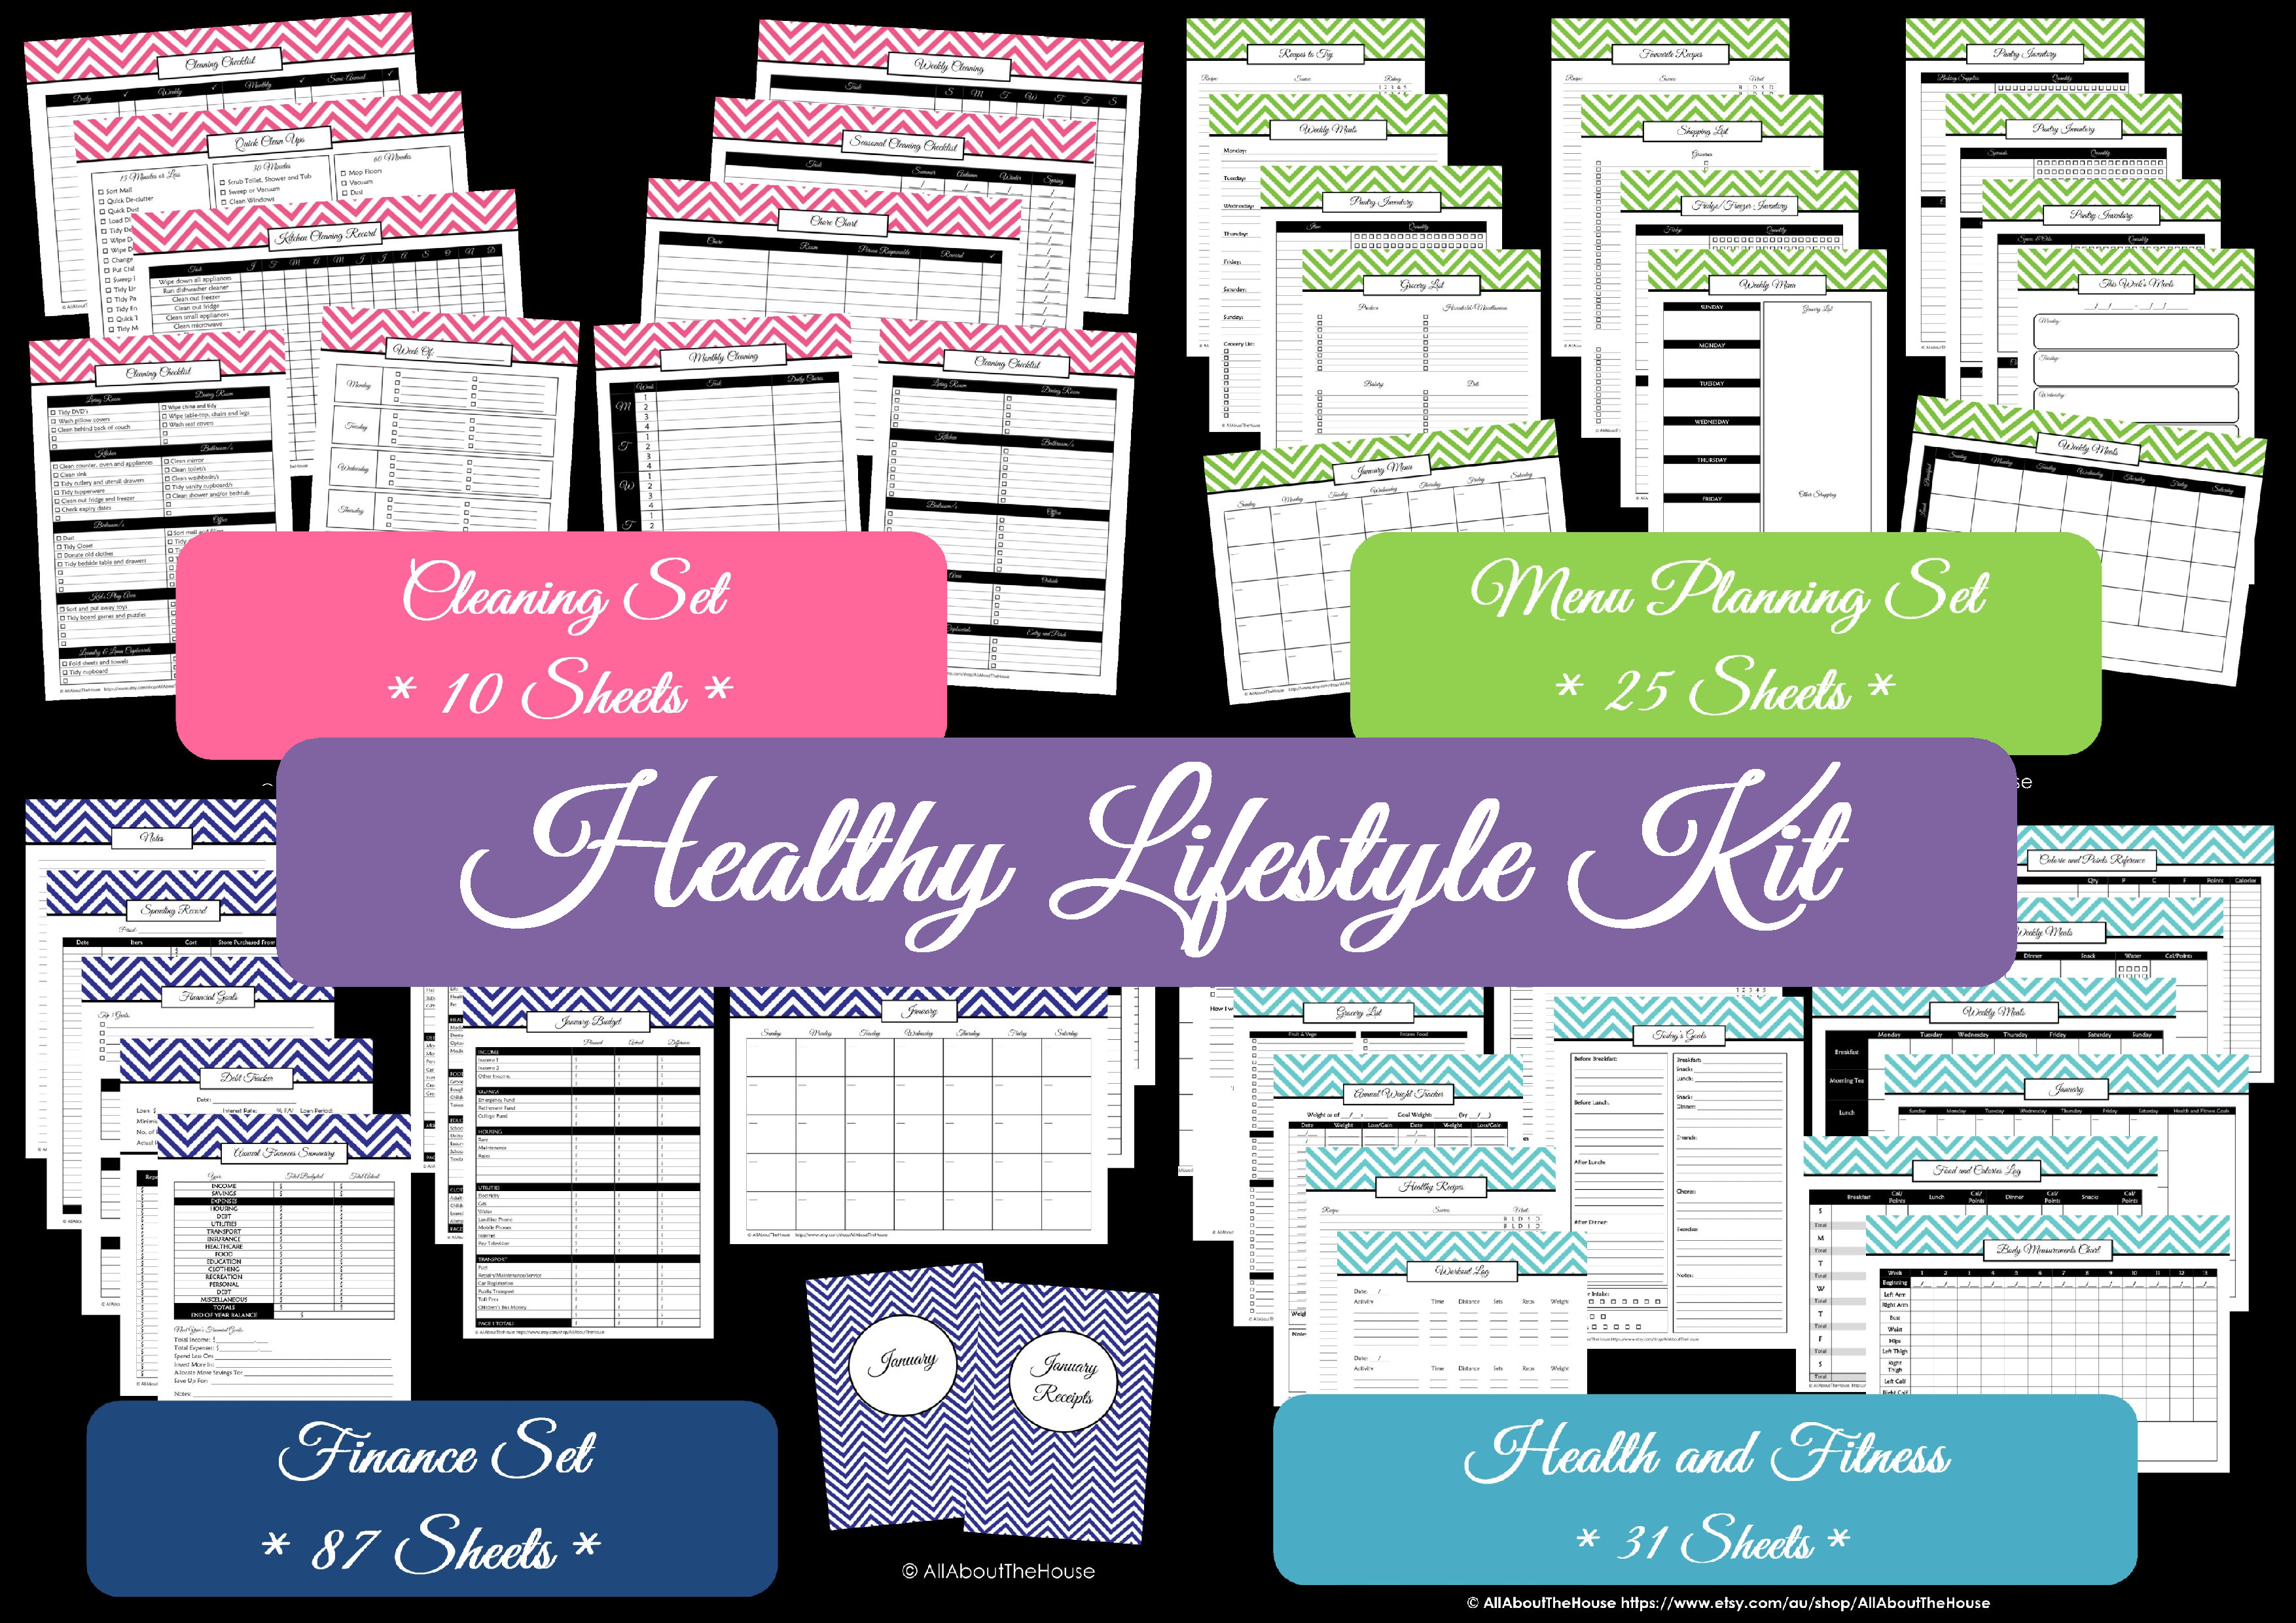 Healthy Lifestyle Kit - AllAboutTheHouse